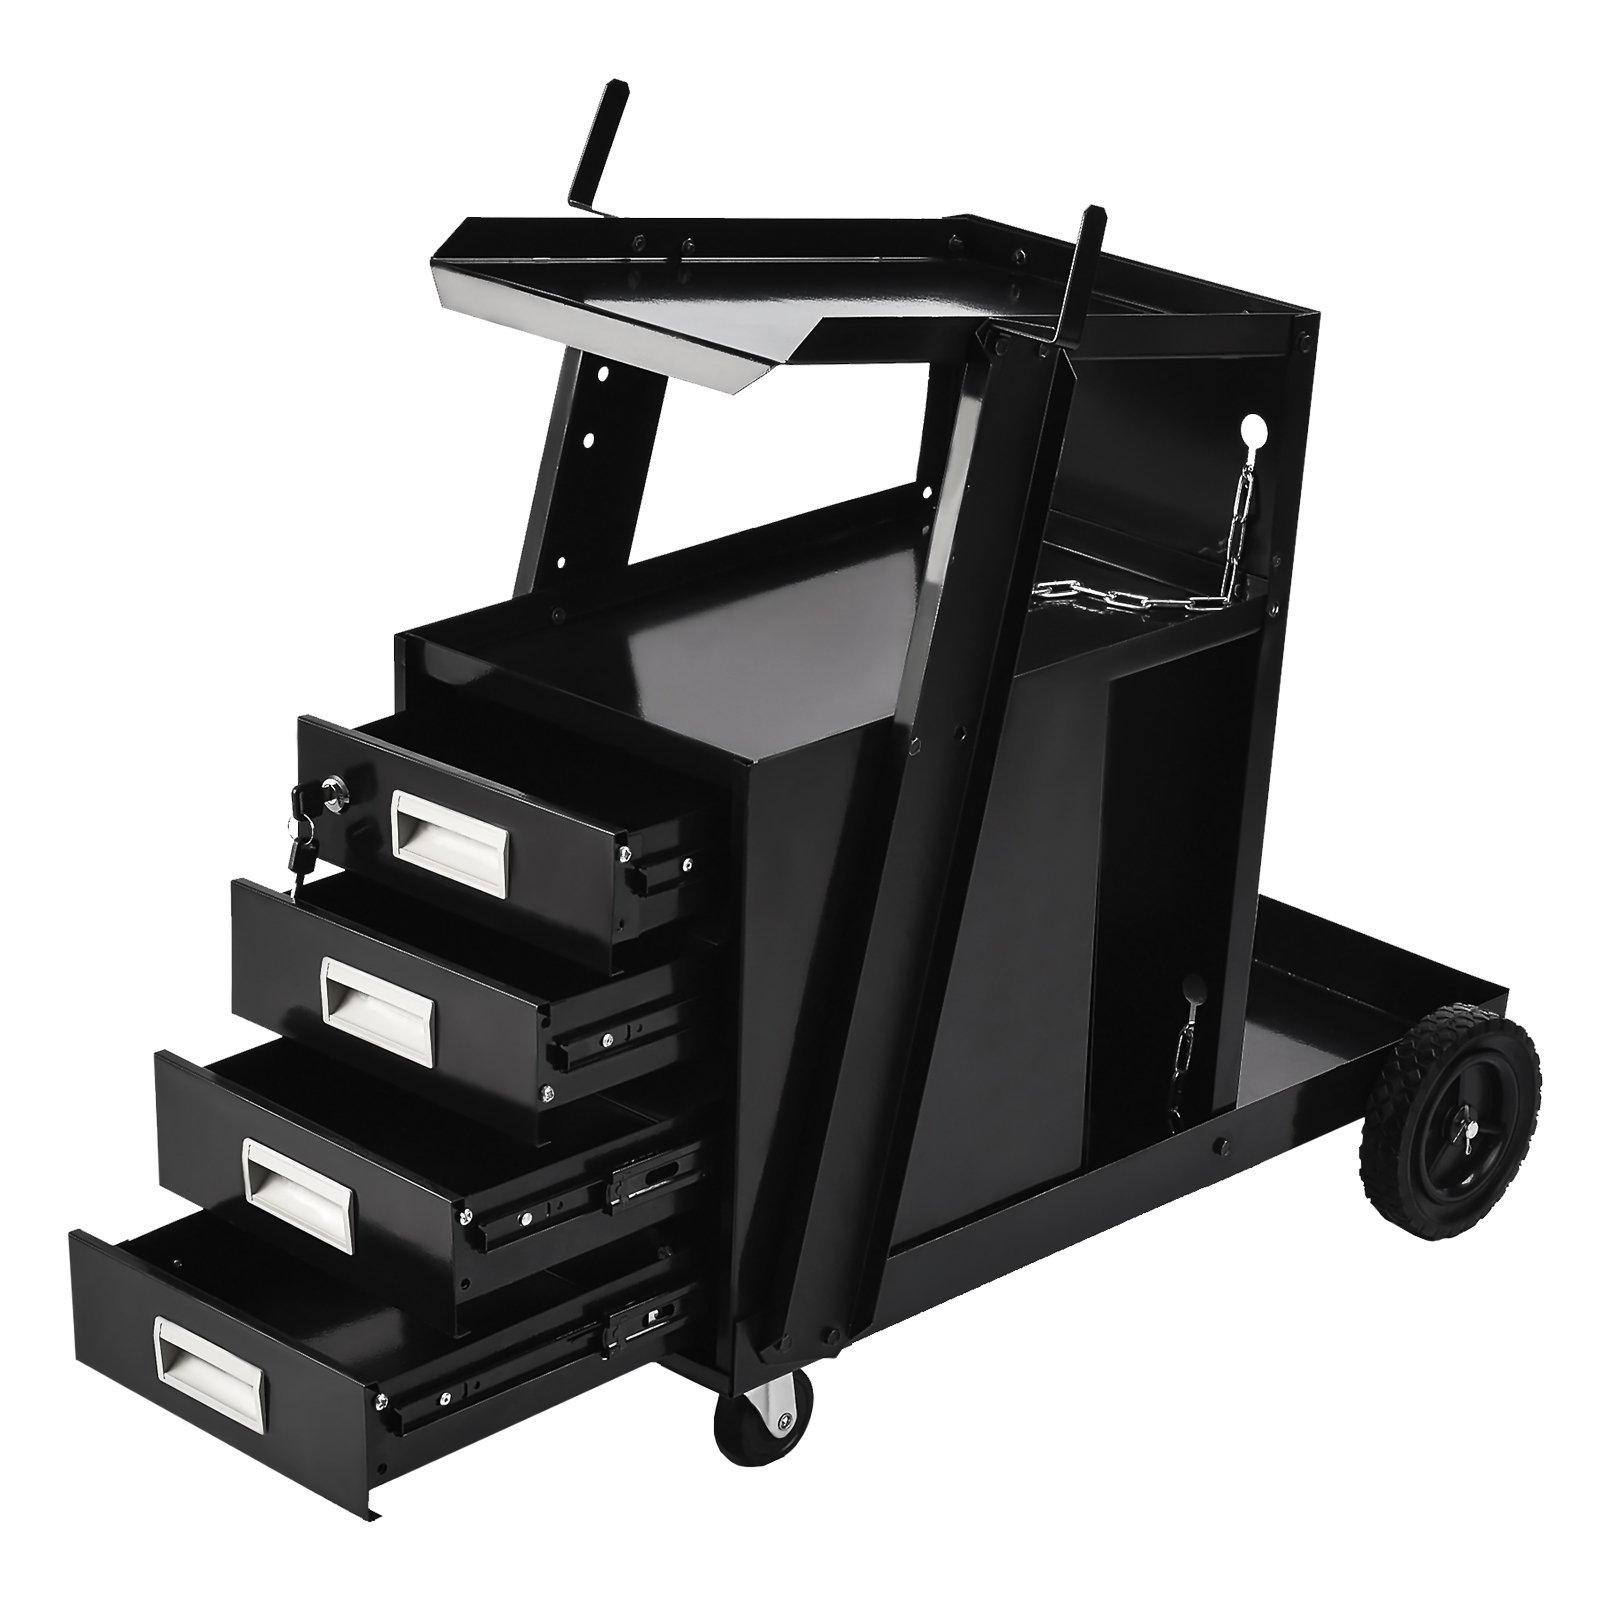 SUNCOO Welding Cart Welder Utility Cart Trolley Plasma Cutter Universal Storage for Tanks MIG –with Rear Wheels Swivel Casters,2 Safety Chains,4- Drawer,100 Lb Capacity,Powder-Coat Black Finish